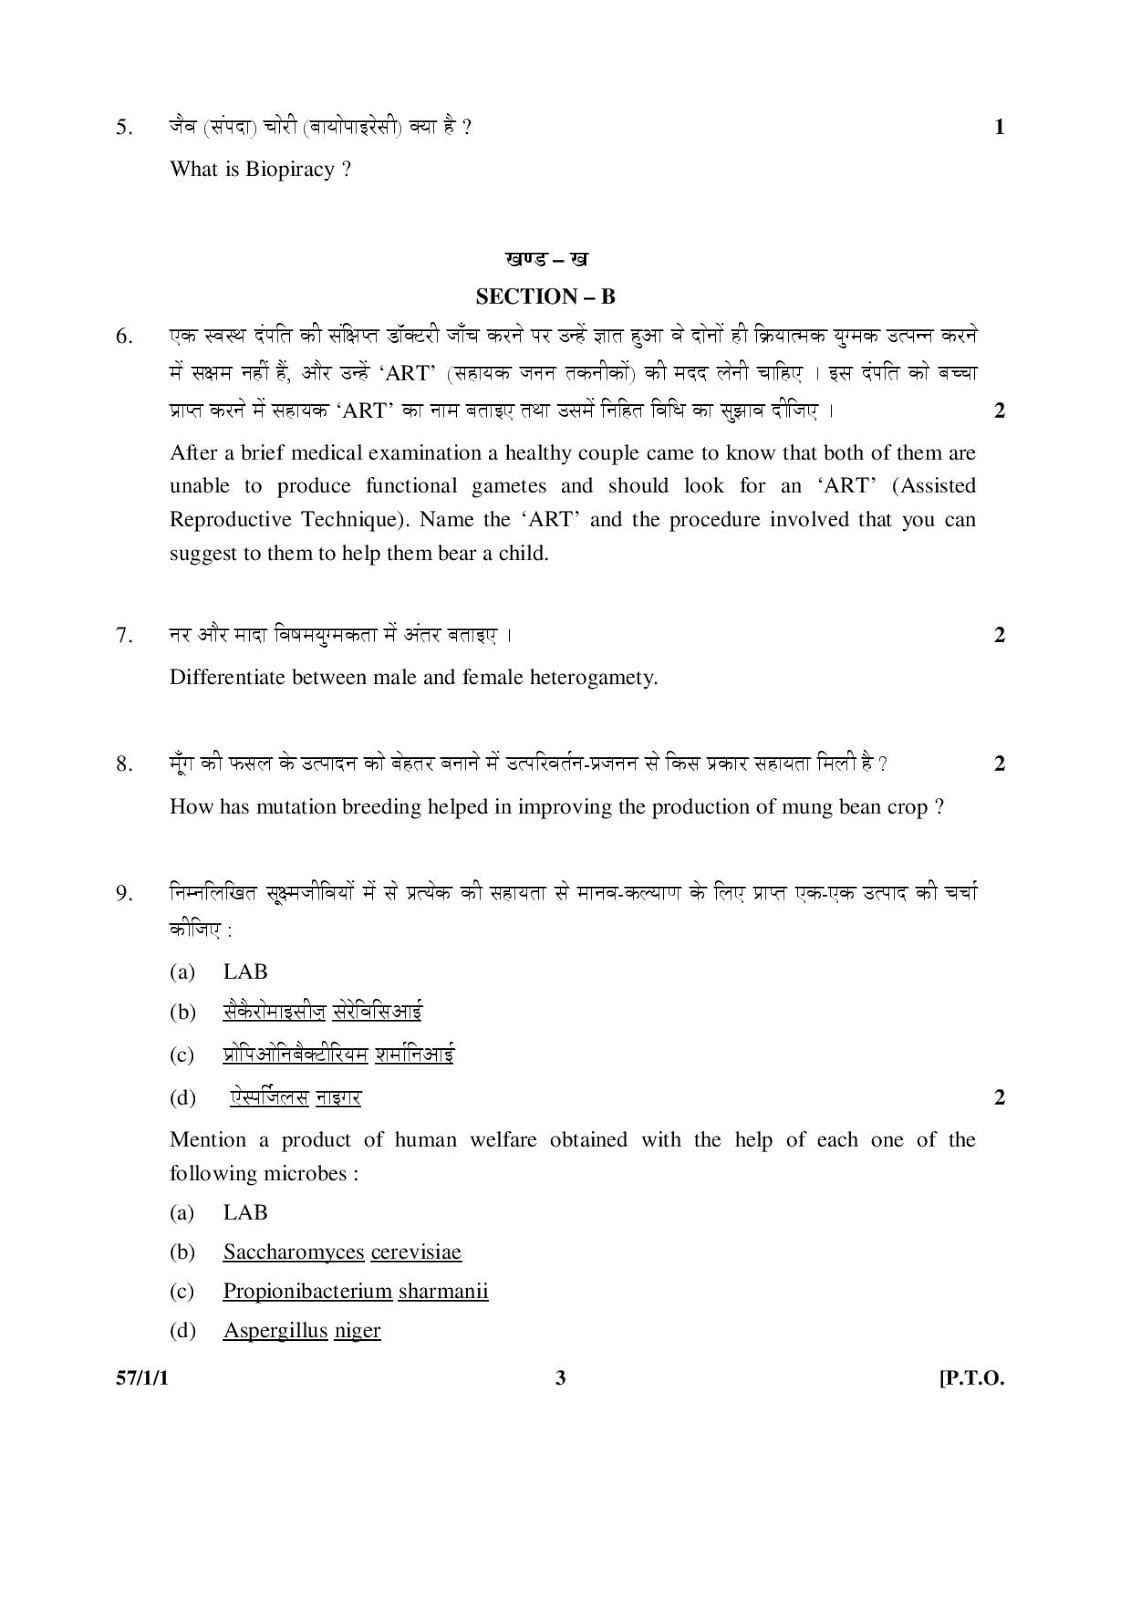 CBSE Class 12 Biology 2015 Question Paper